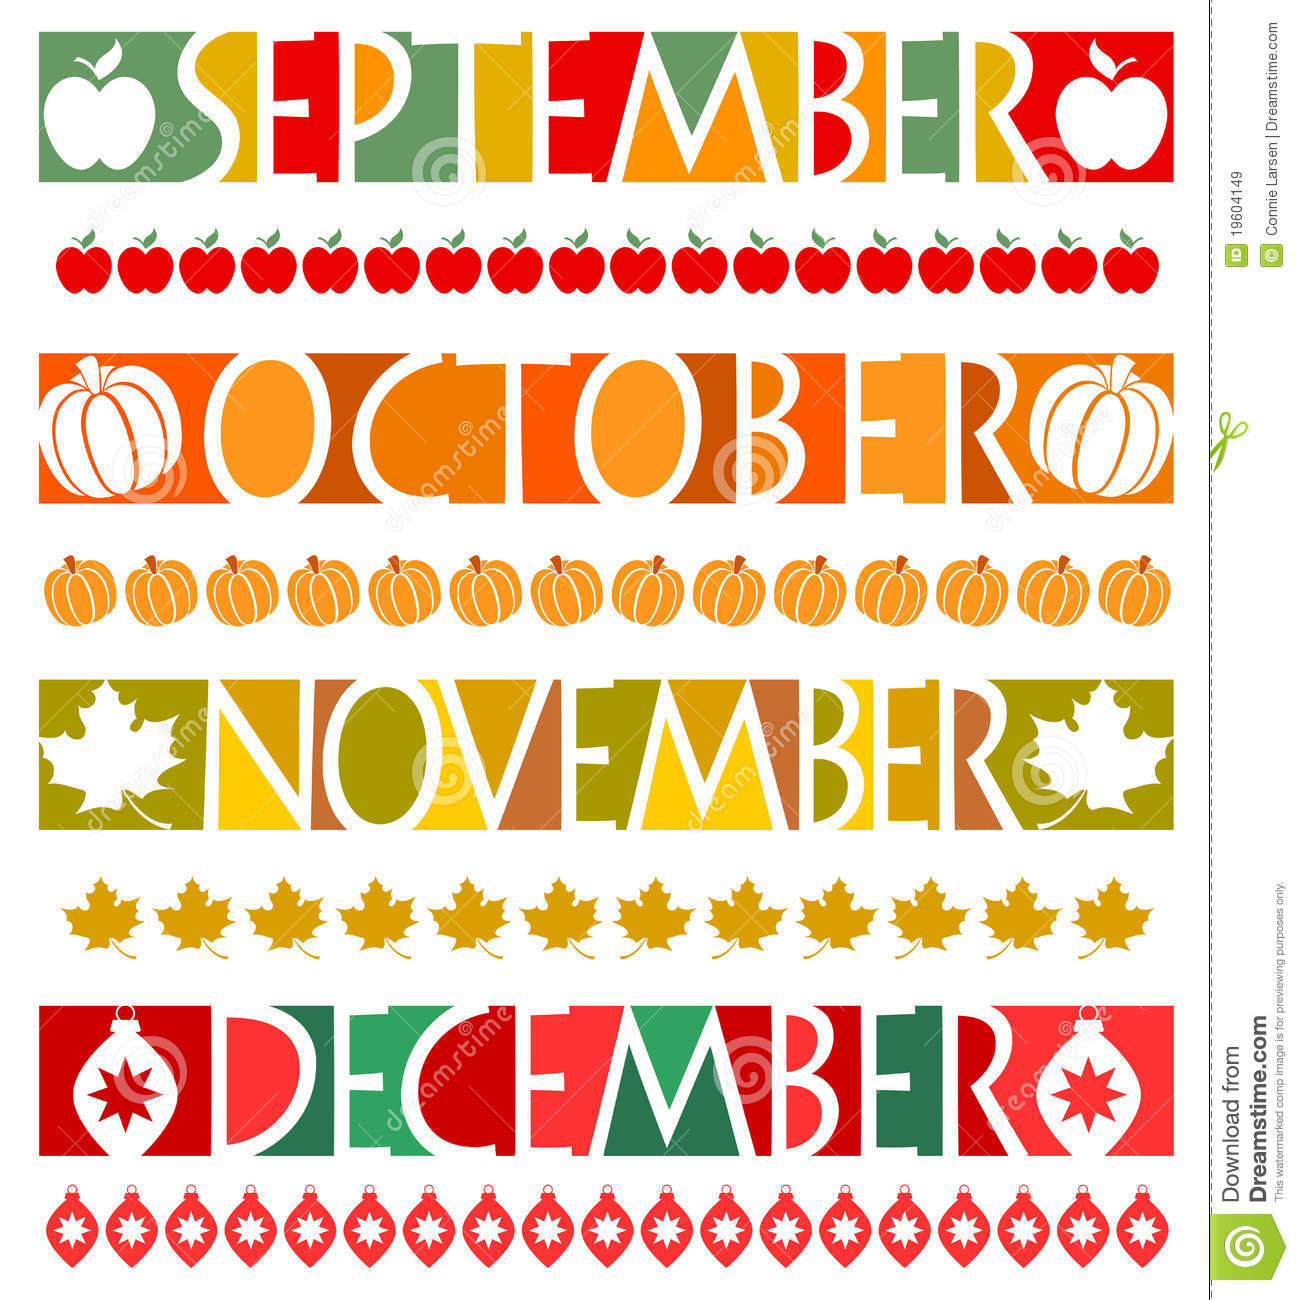 Month september clipart image transparent library September banner clipart - ClipartFest image transparent library